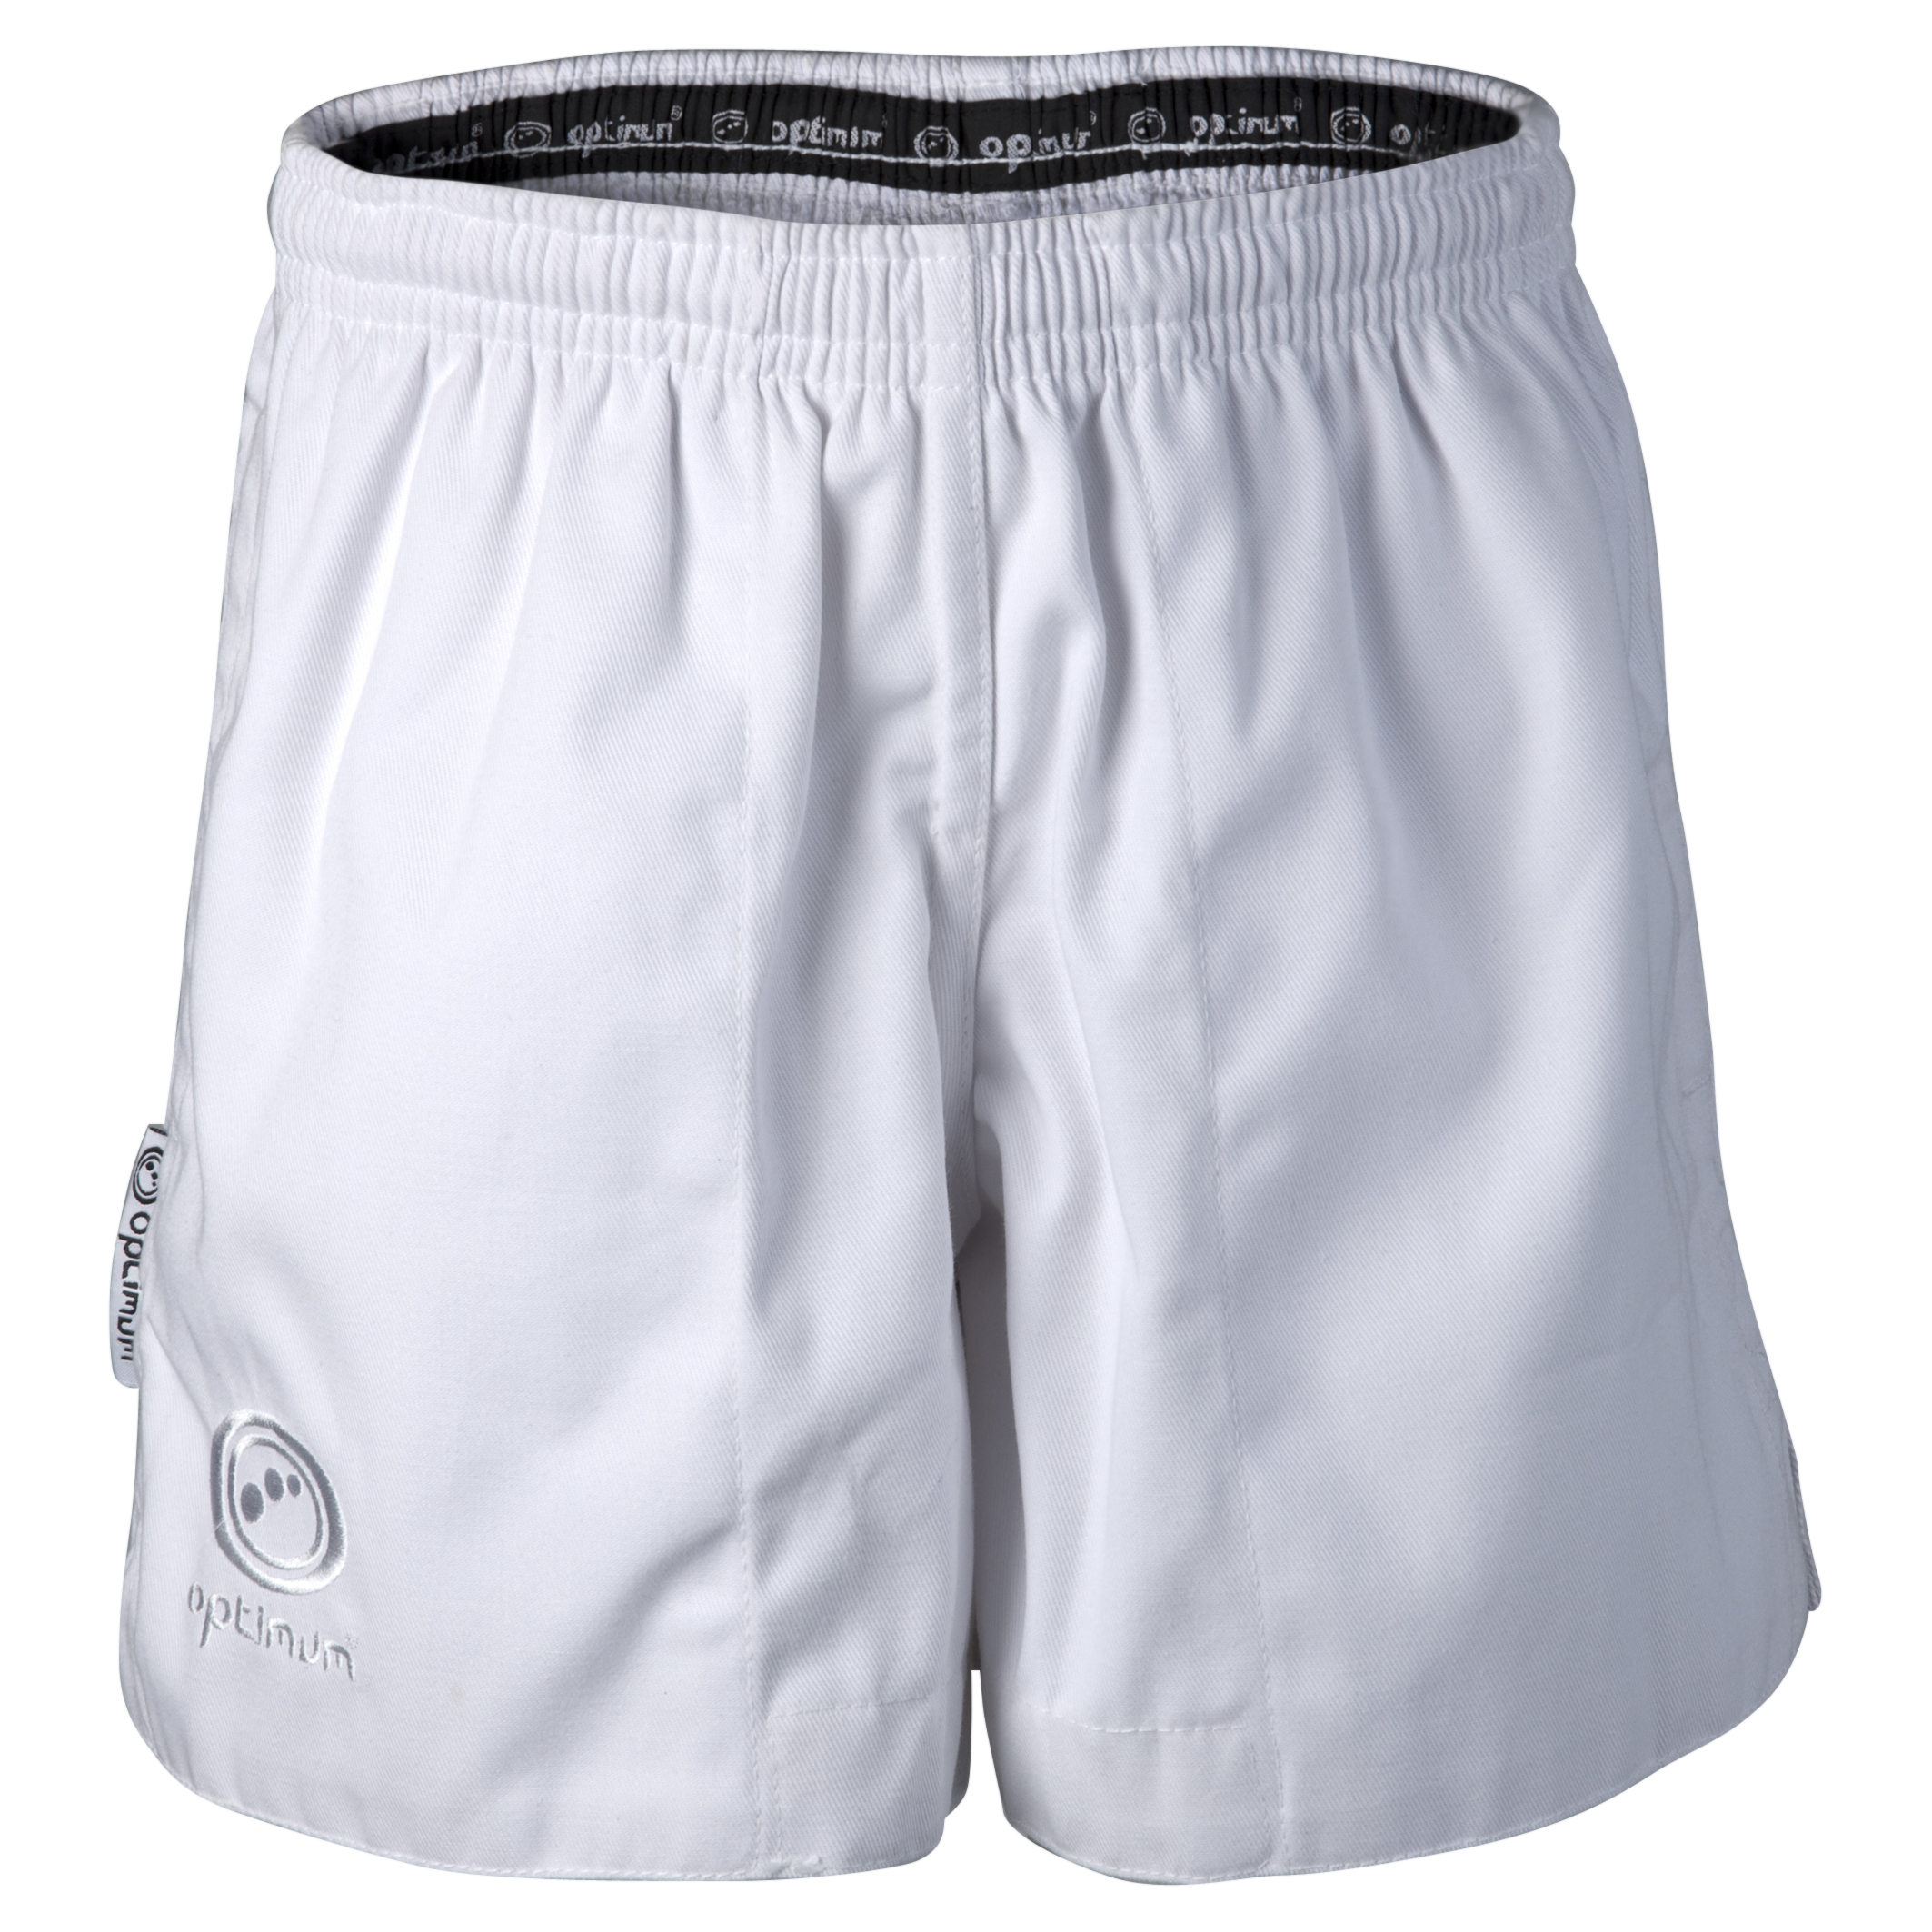 Optimum Auckland Rugby Shorts - White - Kids.